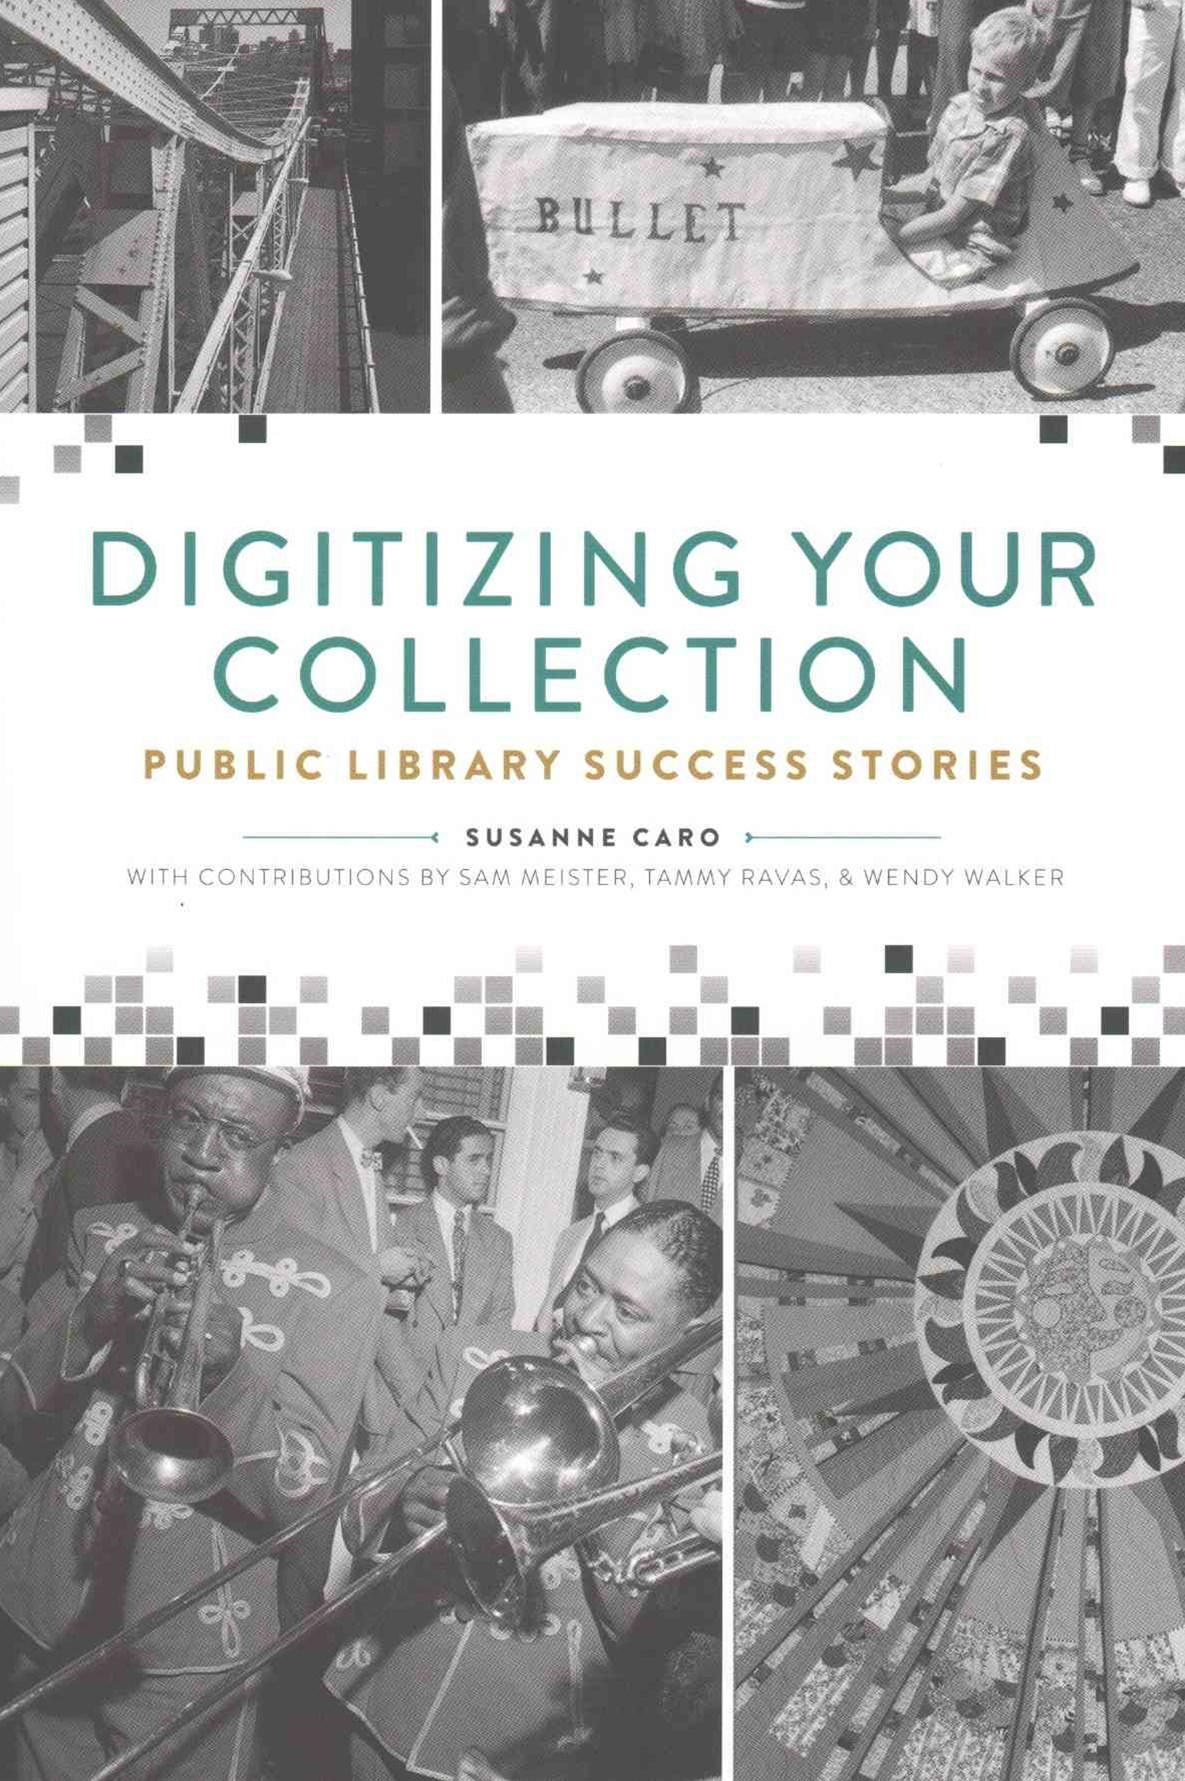 Digitizing Your Collection